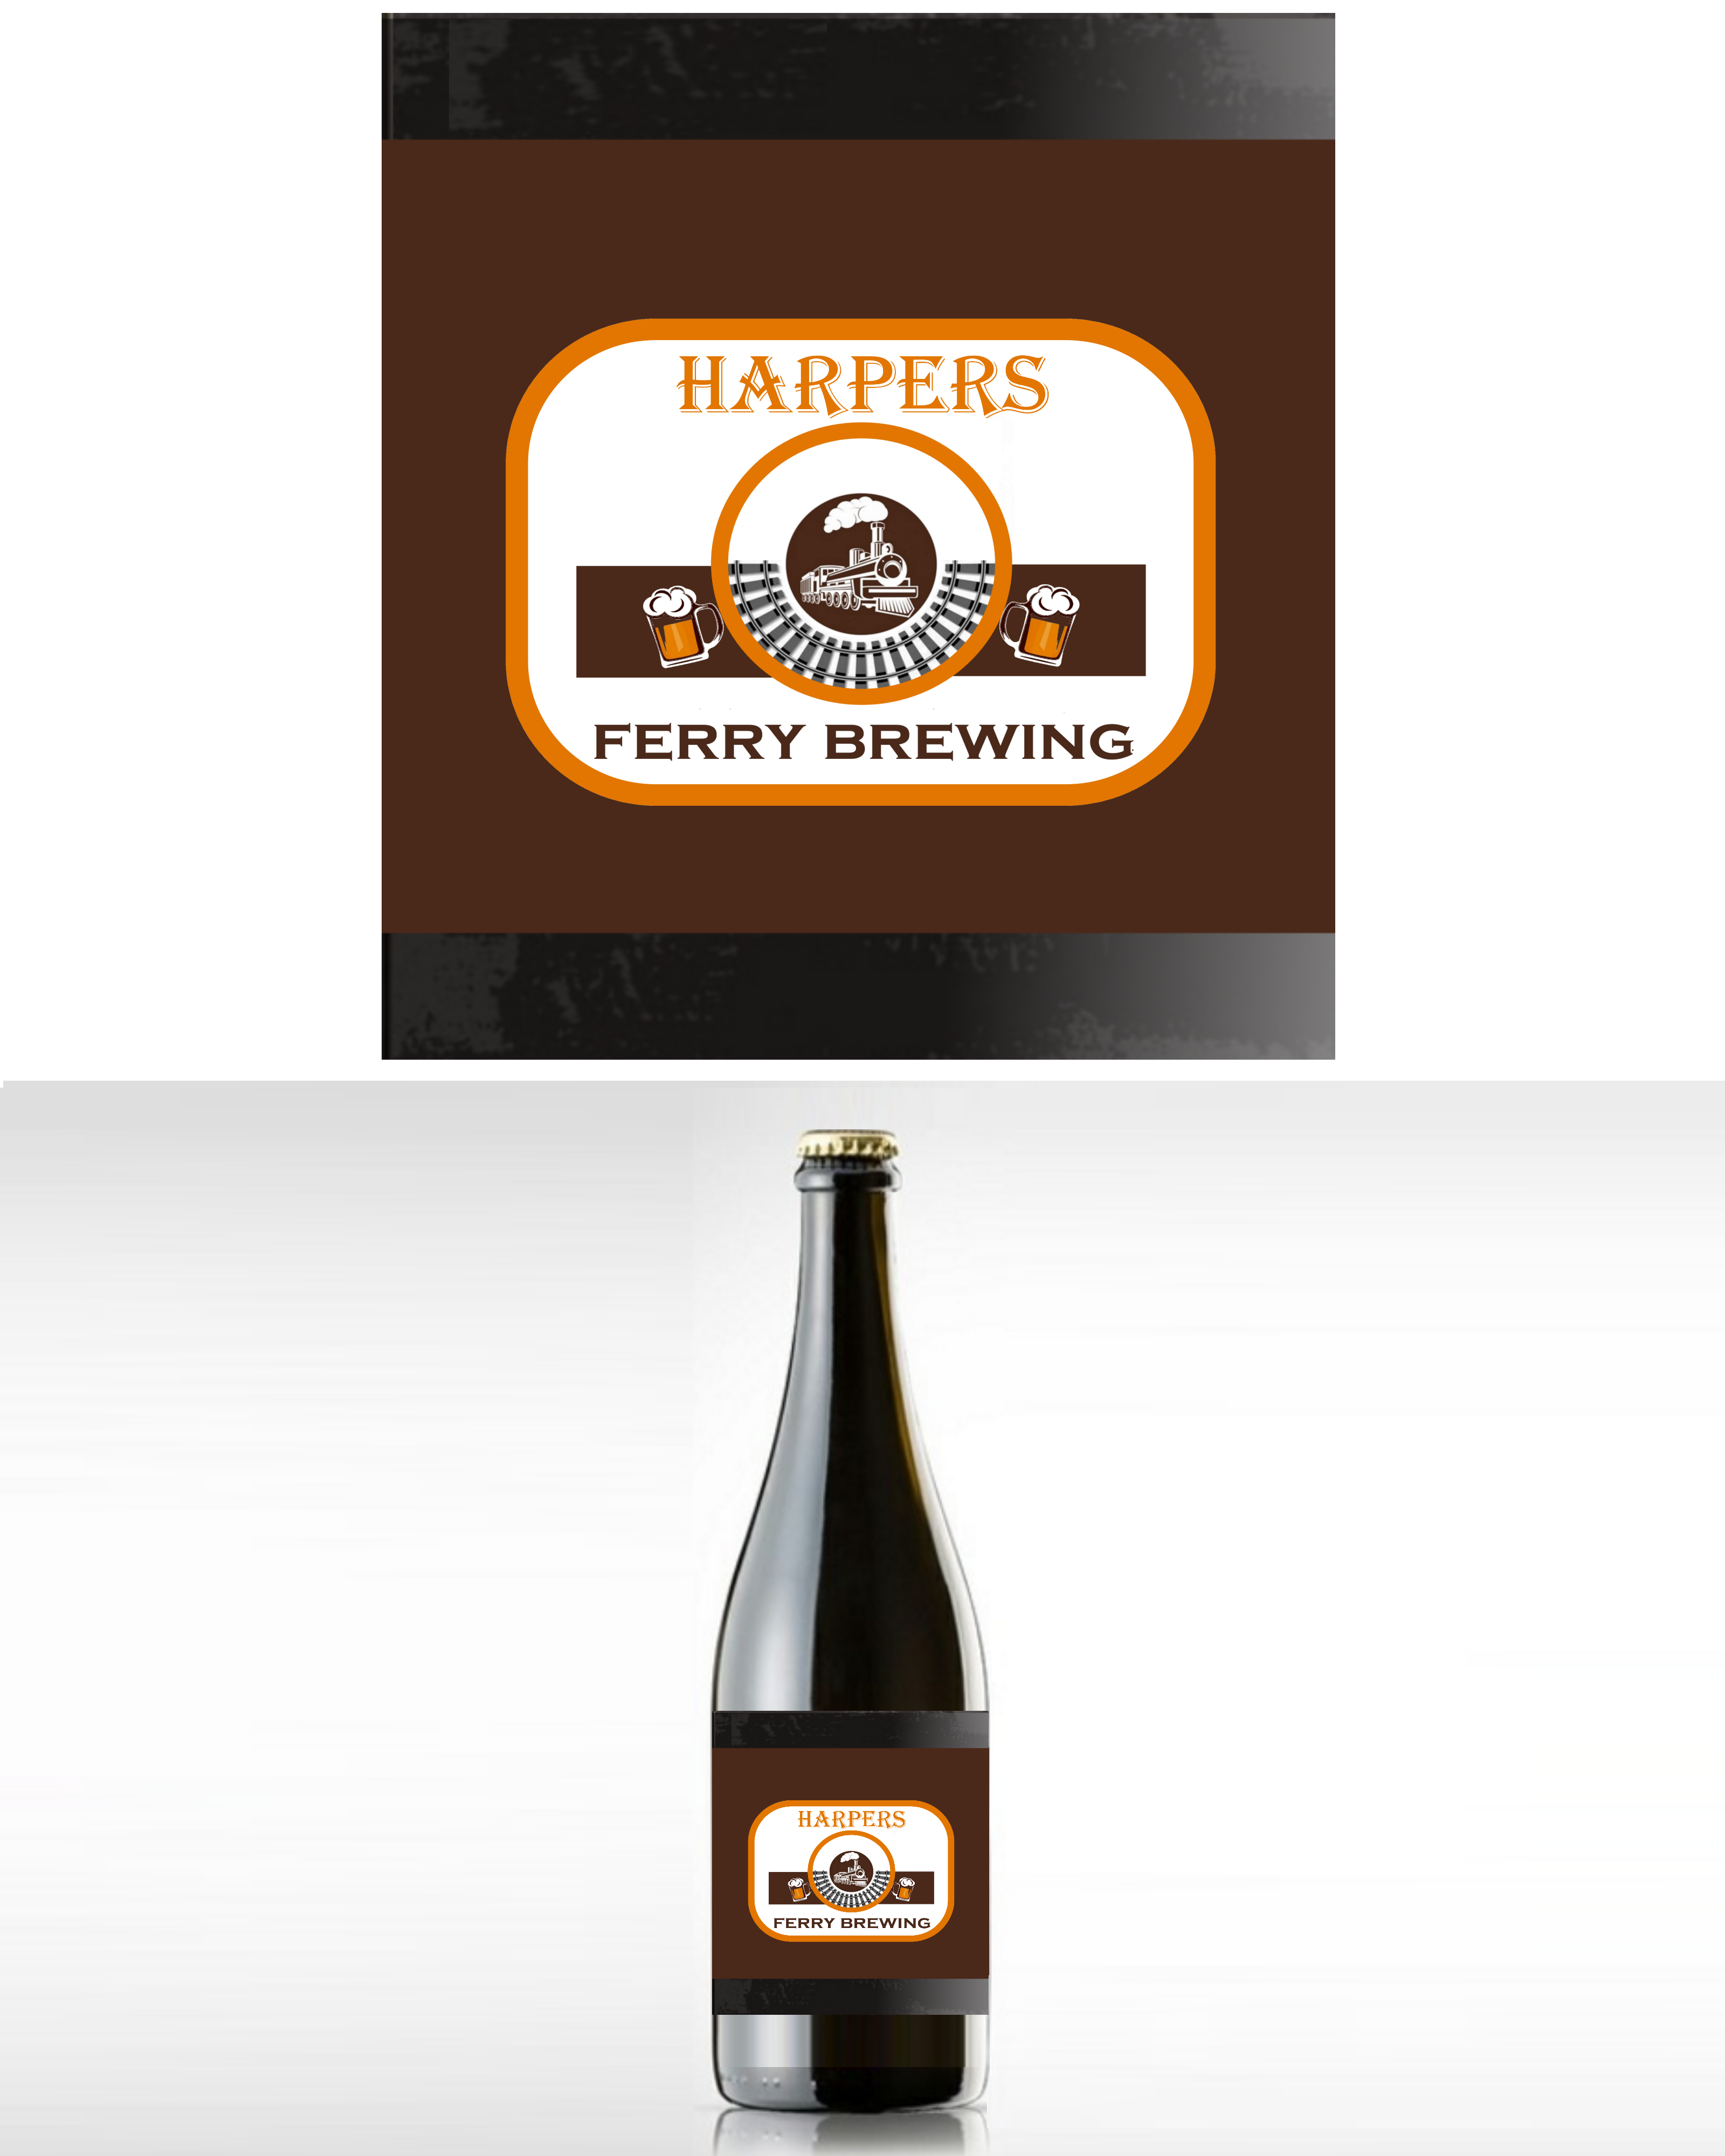 Logo Design by Roberto Bassi - Entry No. 9 in the Logo Design Contest Unique Logo Design Wanted for Harpers ferry brewing company.